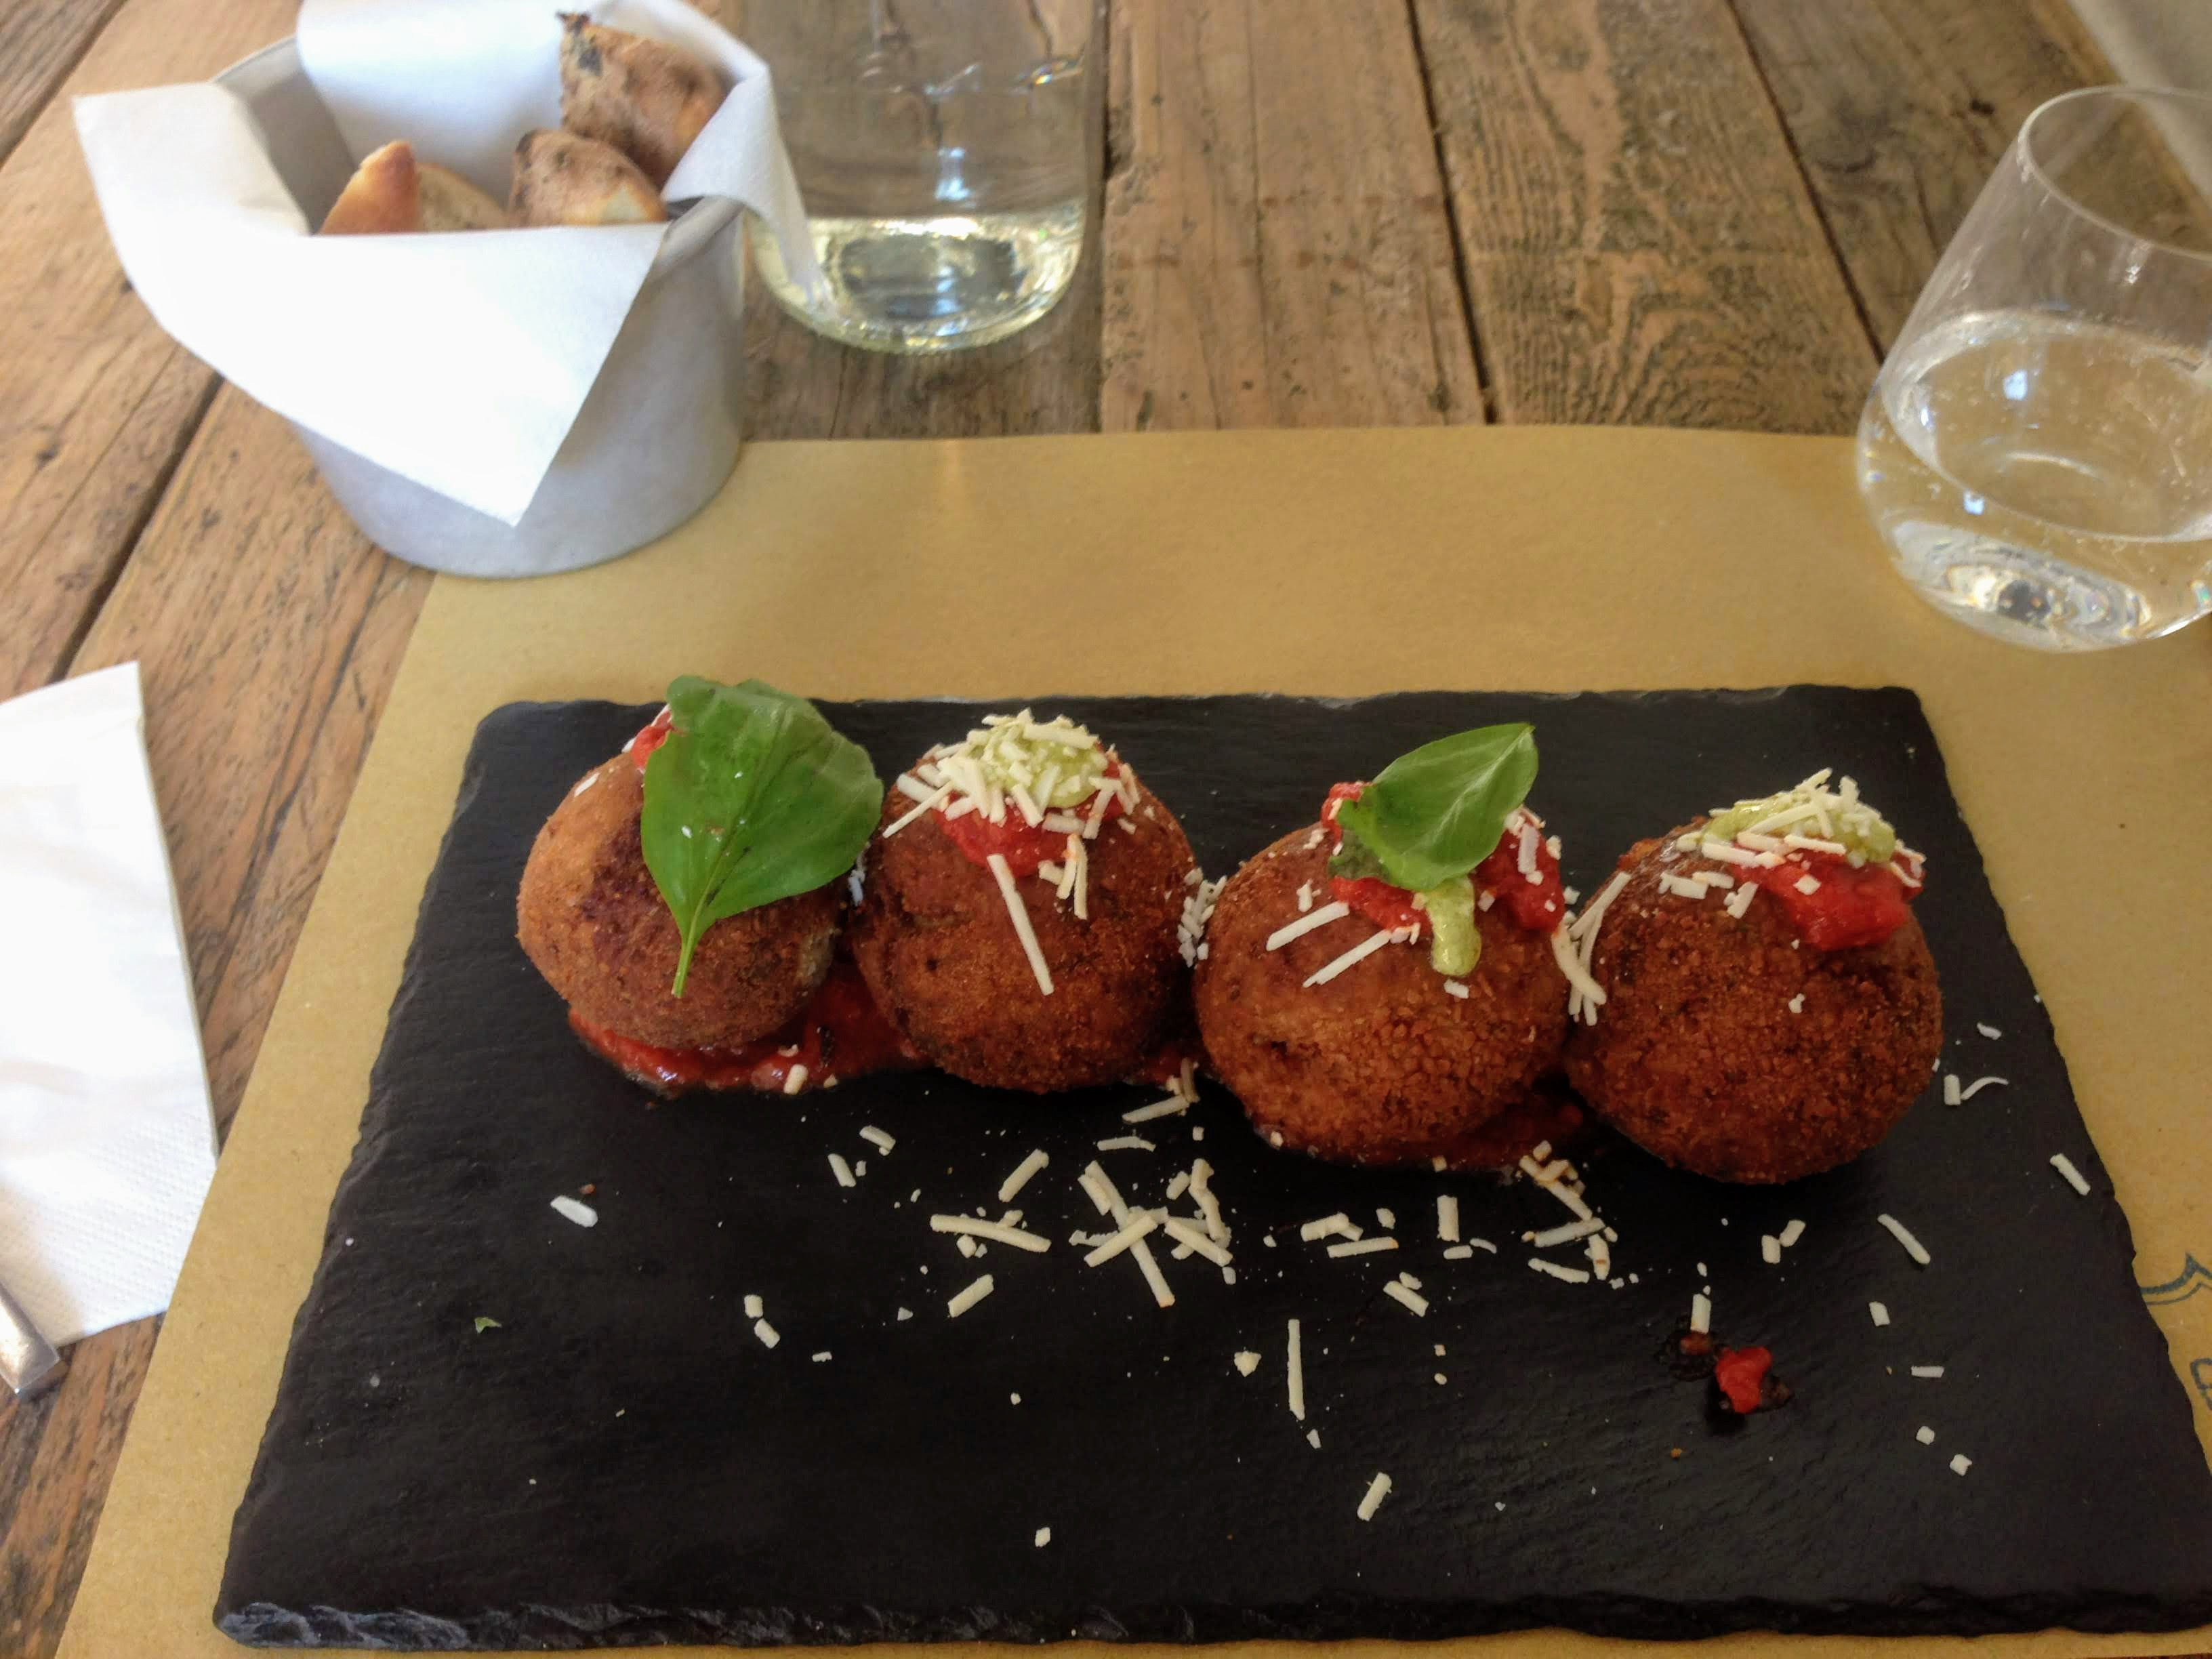 Italian cuisine food guide tavel guide food tips things to eat traditional dishes Sicily polpette